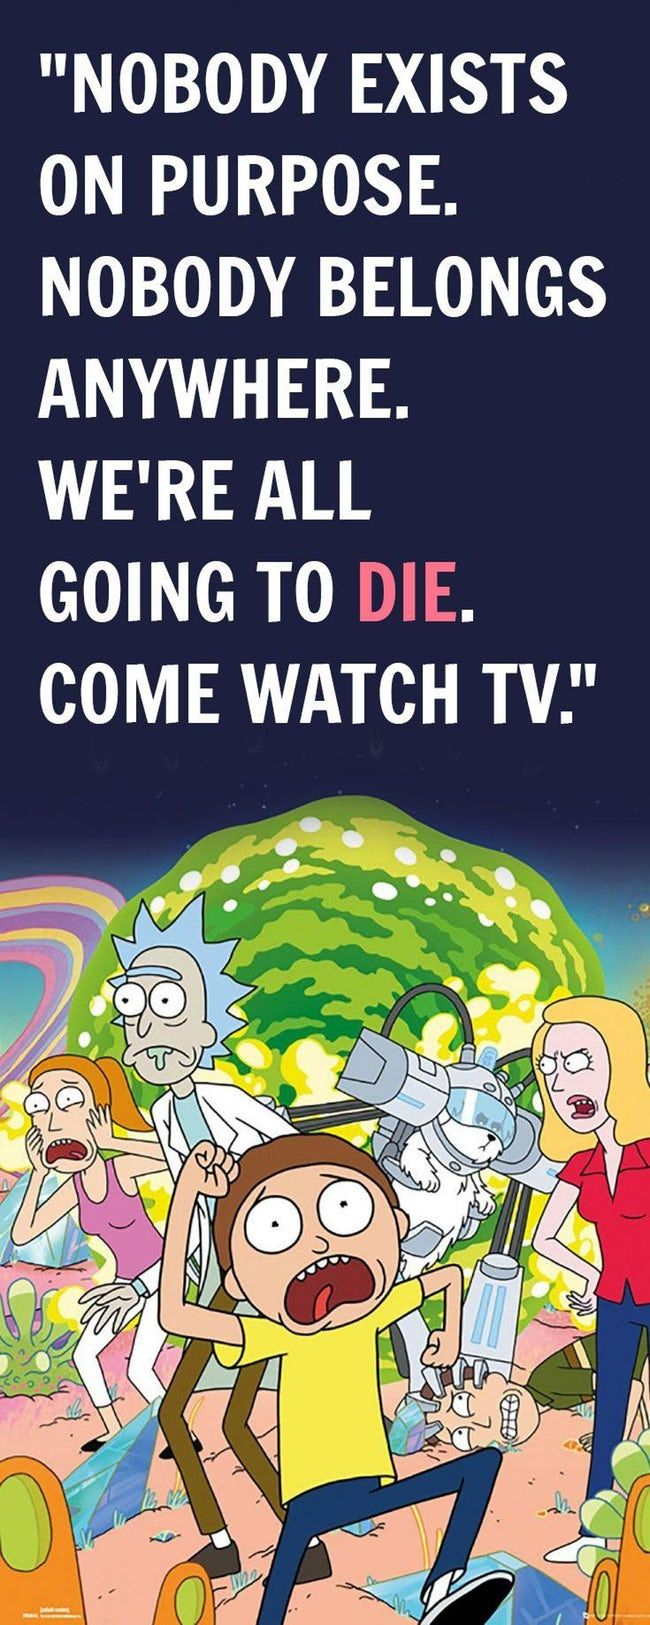 Best Rick And Morty Quotes The Best Rick And Morty Quotes From The Series So Far  Hilarious